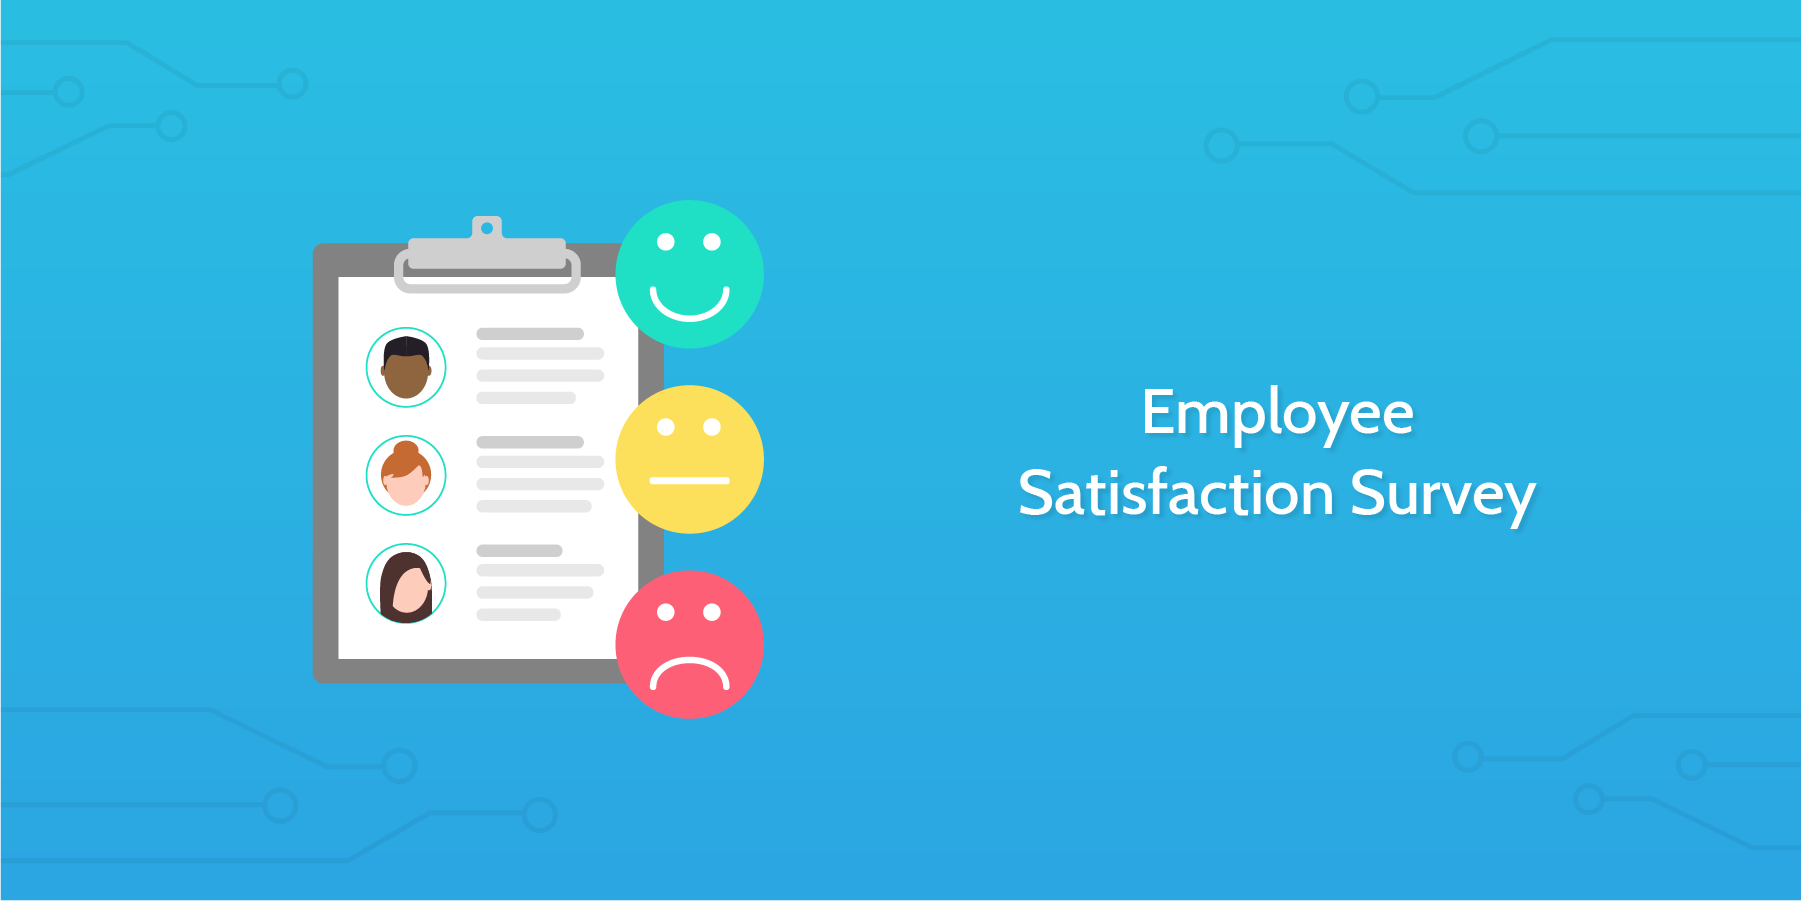 Introduction to Employee Satisfaction Survey: